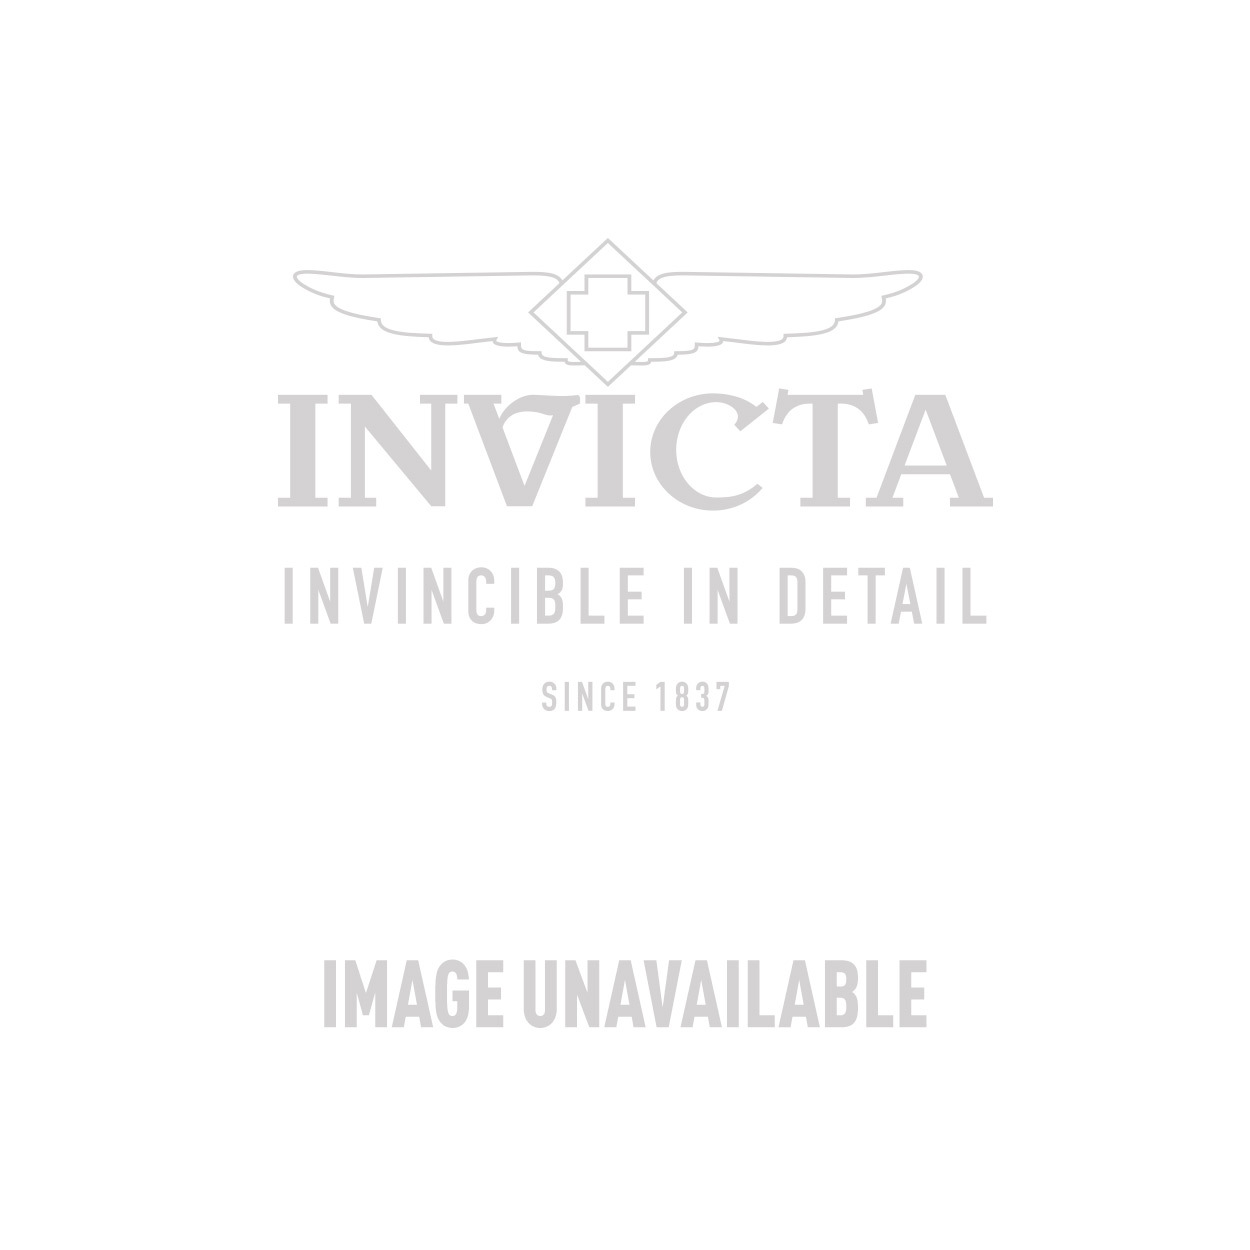 Invicta Angel Swiss Movement Quartz Watch - Gold case with Gold tone Stainless Steel band - Model 17942